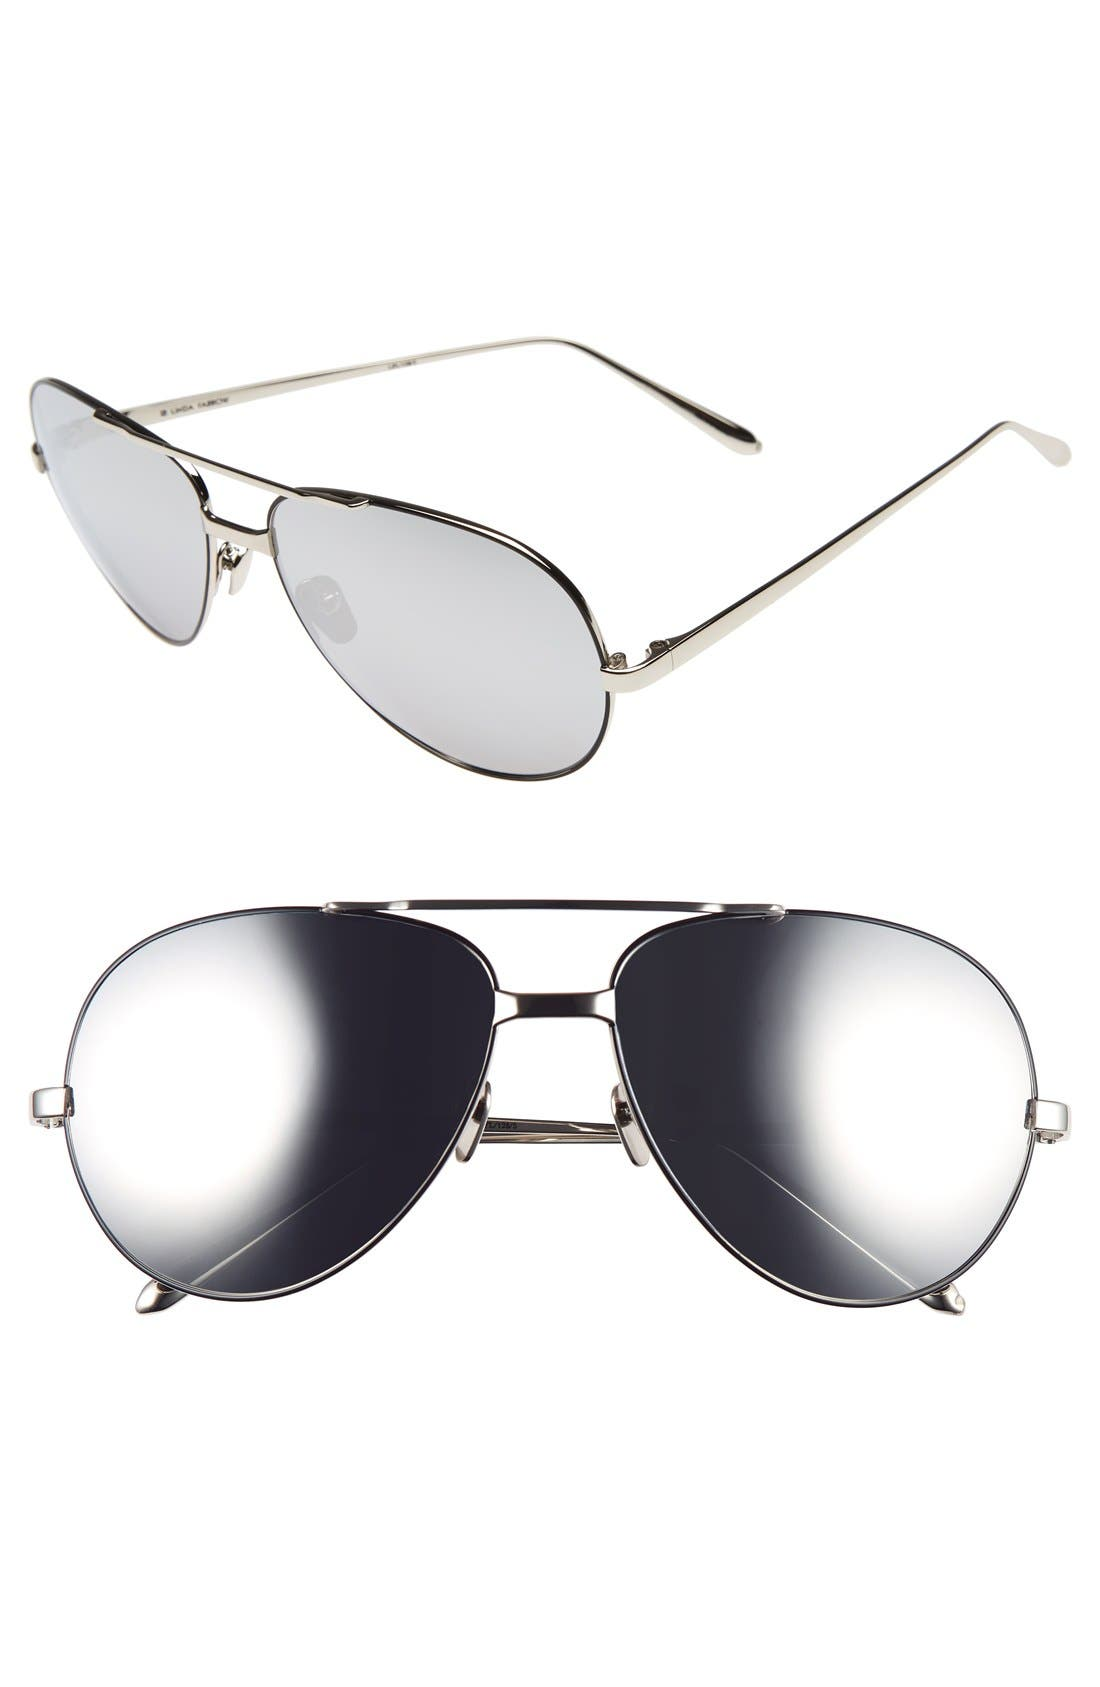 Alternate Image 1 Selected - Linda Farrow 59mm 18 Karat White Gold Trim Aviator Sunglasses